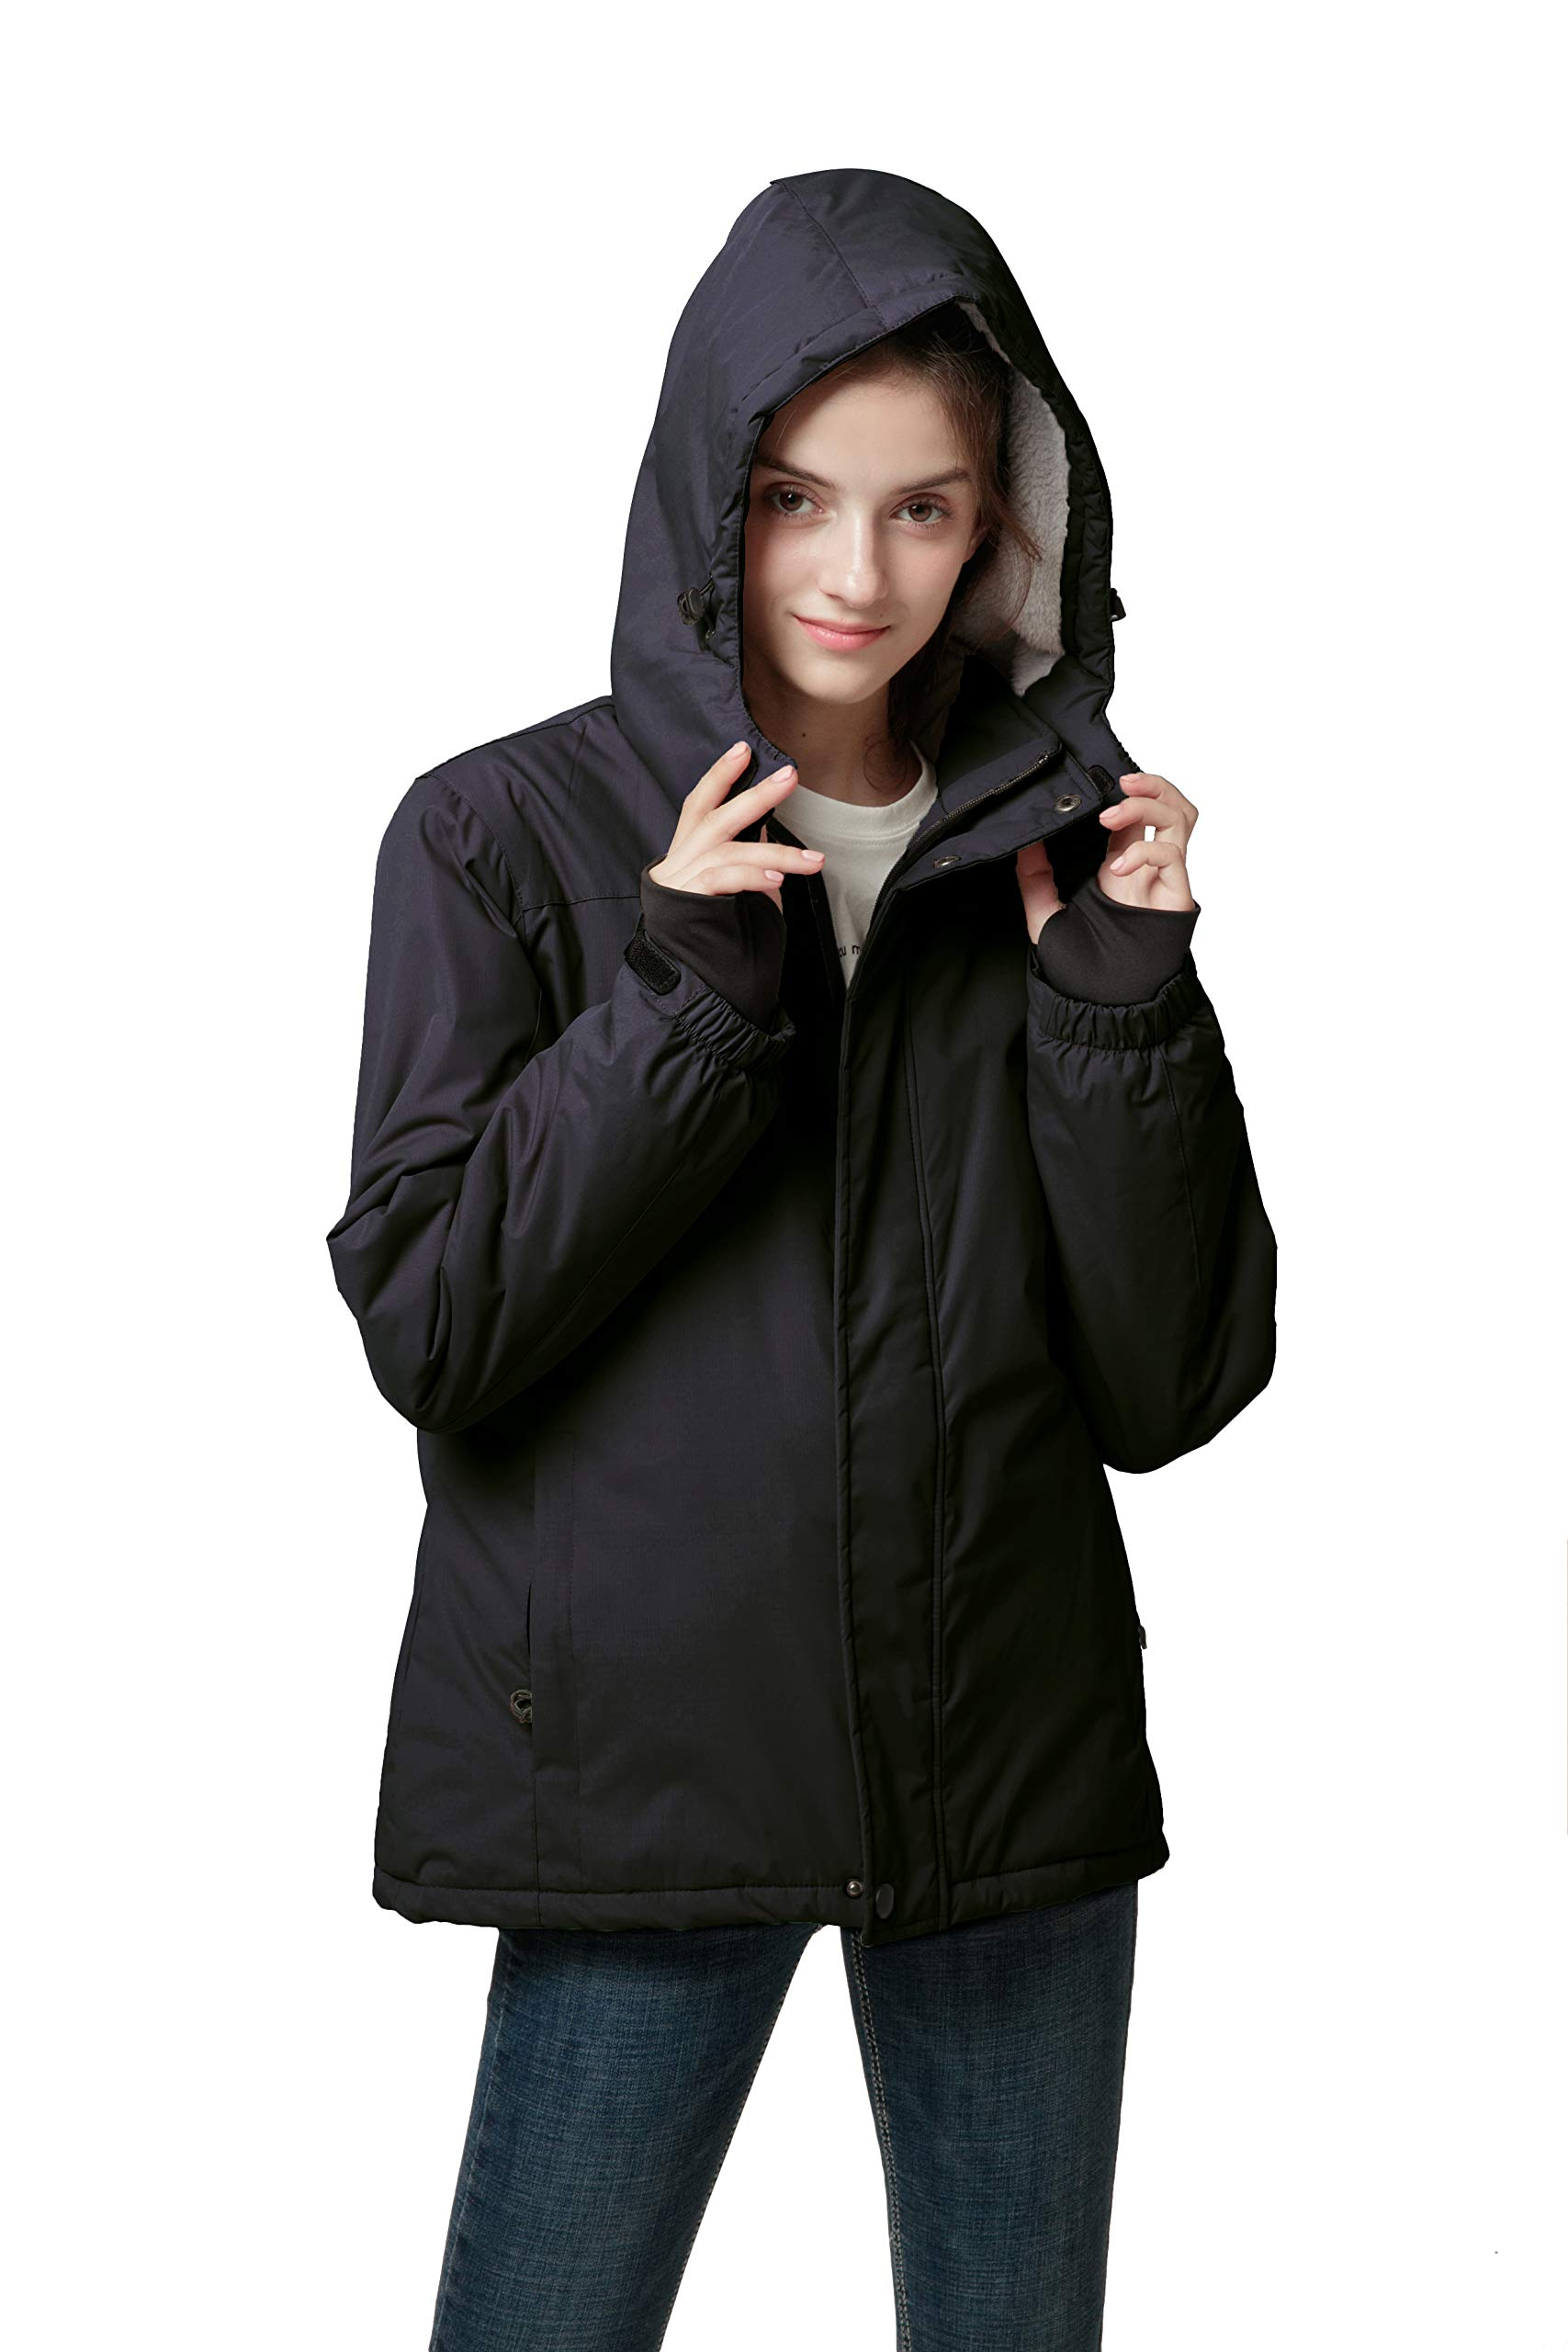 Spmor Women's Waterproof Ski Jacket Mountain Rain Coat Windproof Skin Hooded Jacket